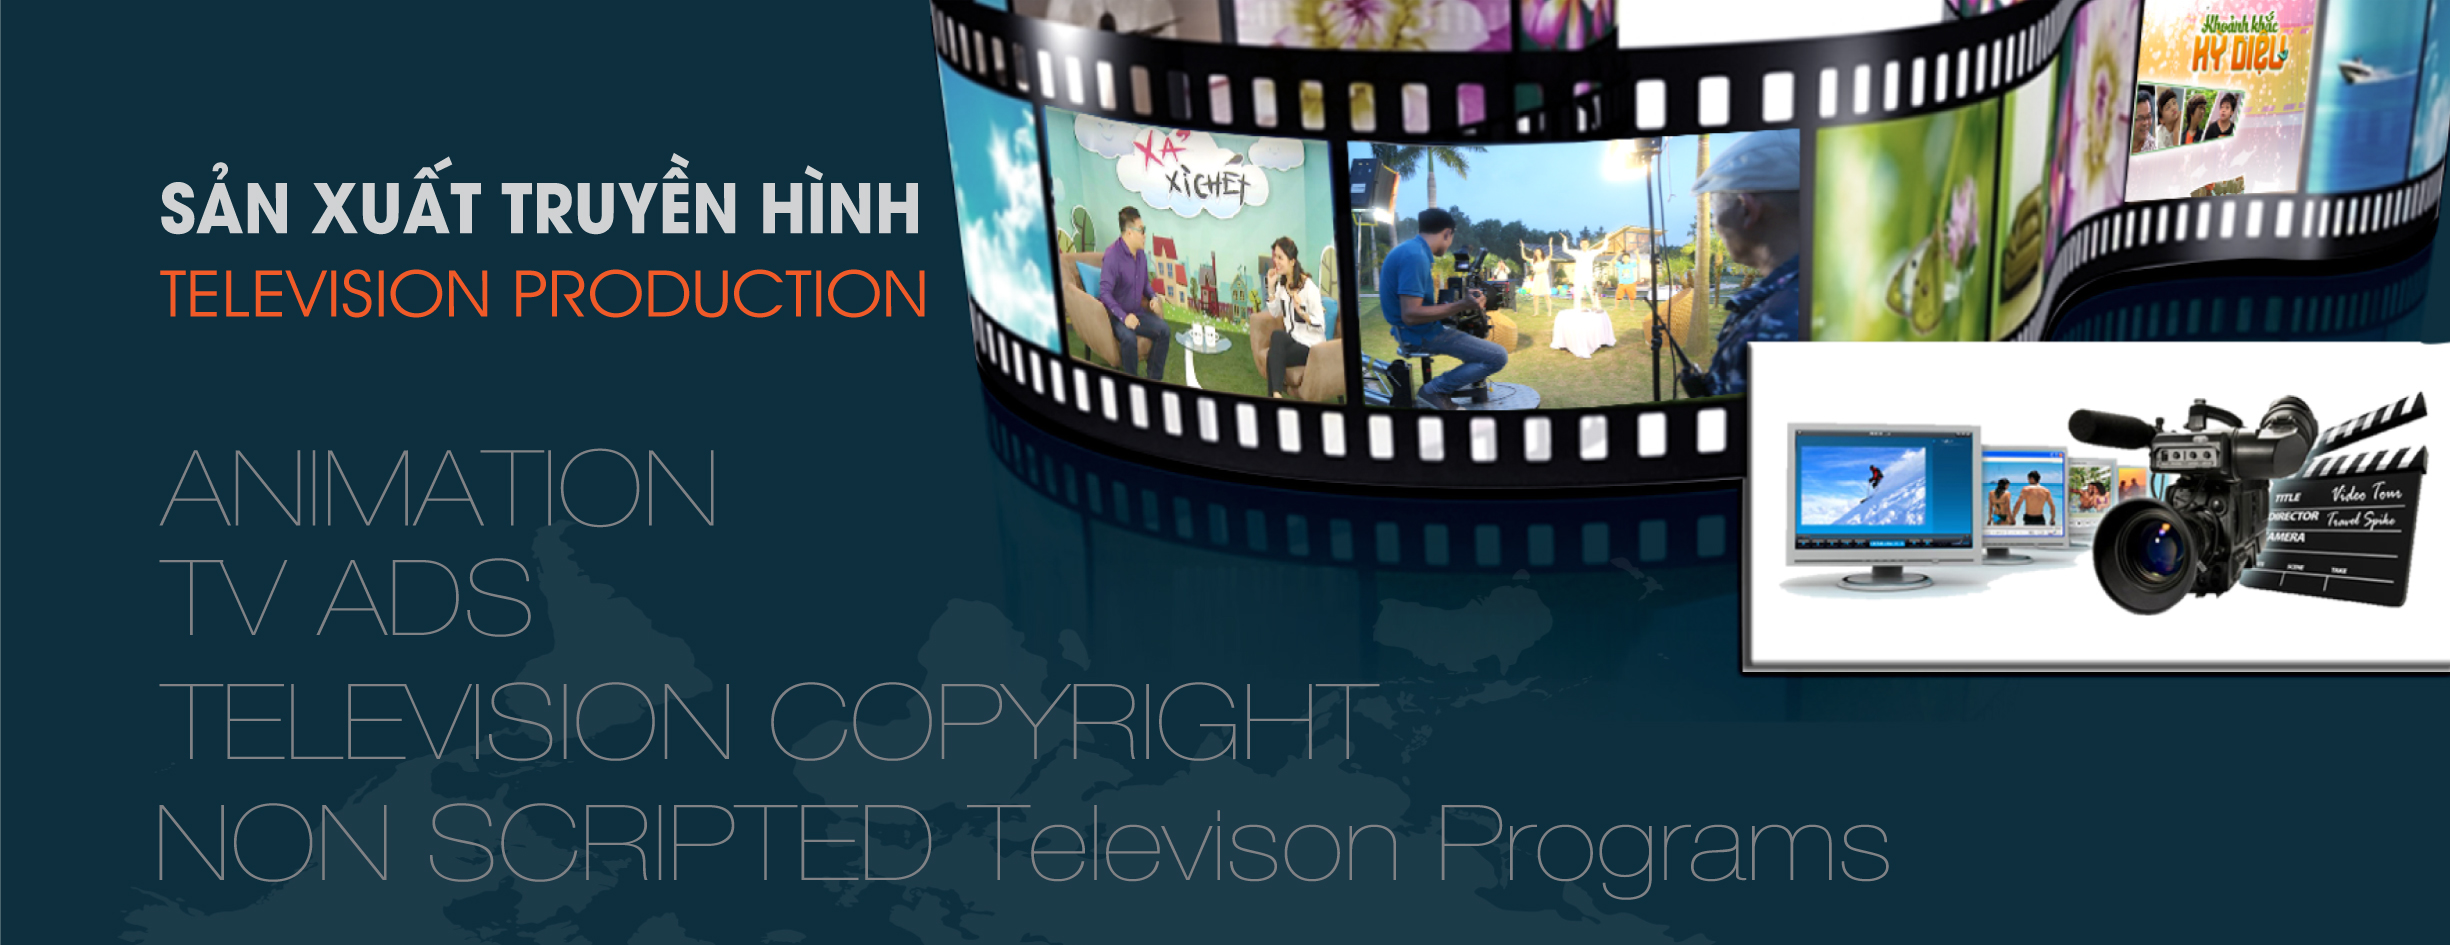 Television programs production